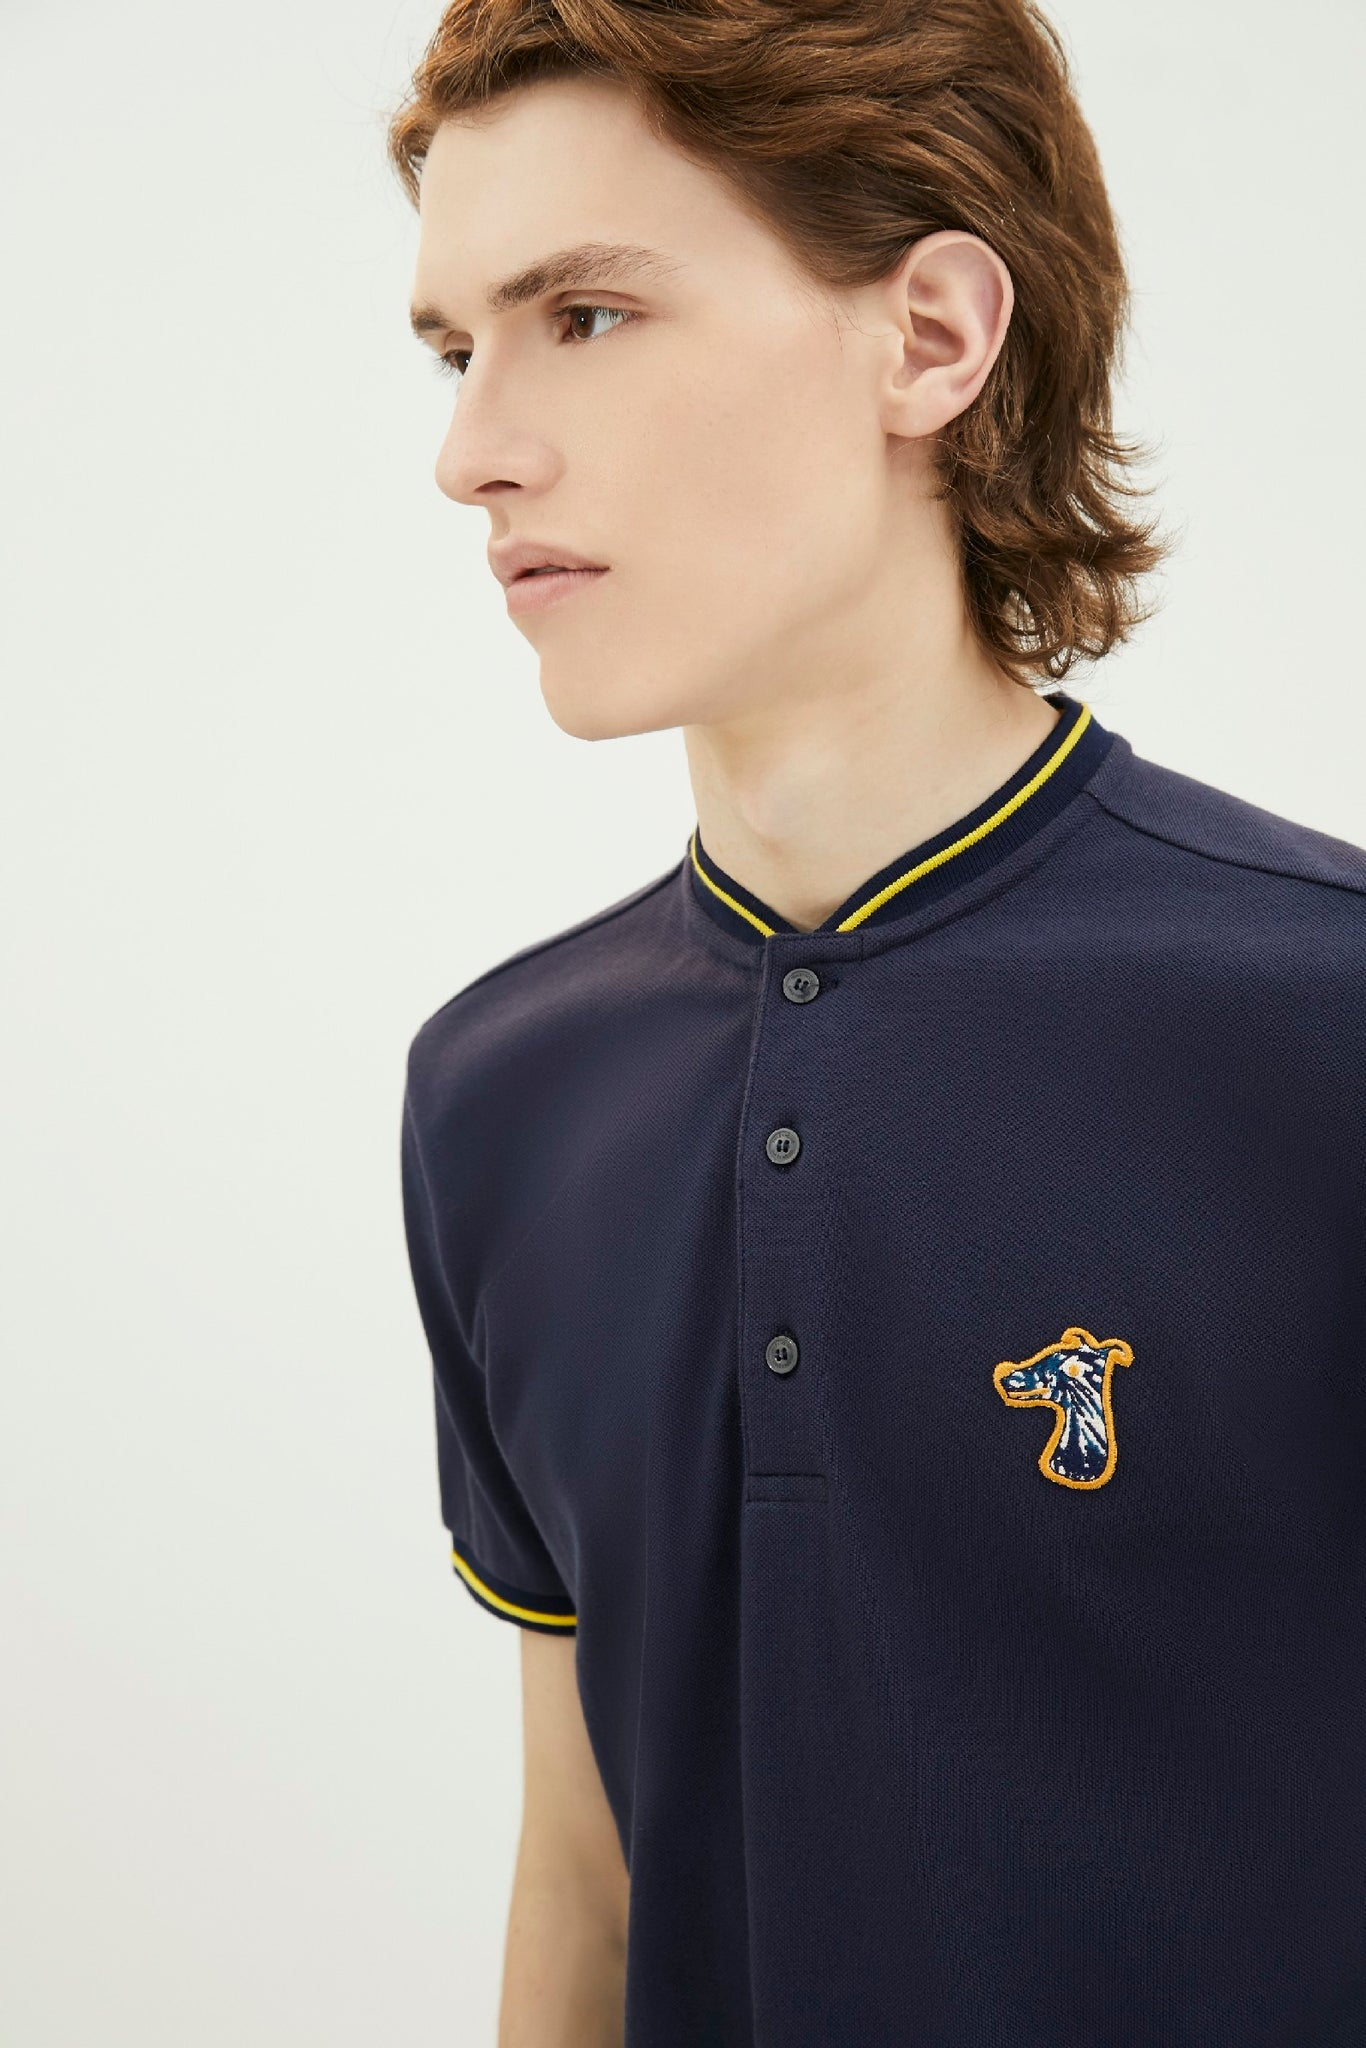 Load image into Gallery viewer, PIQUE POLO SHIRT WITH LOGO EMBROIDED (S20MD03322NB1B)